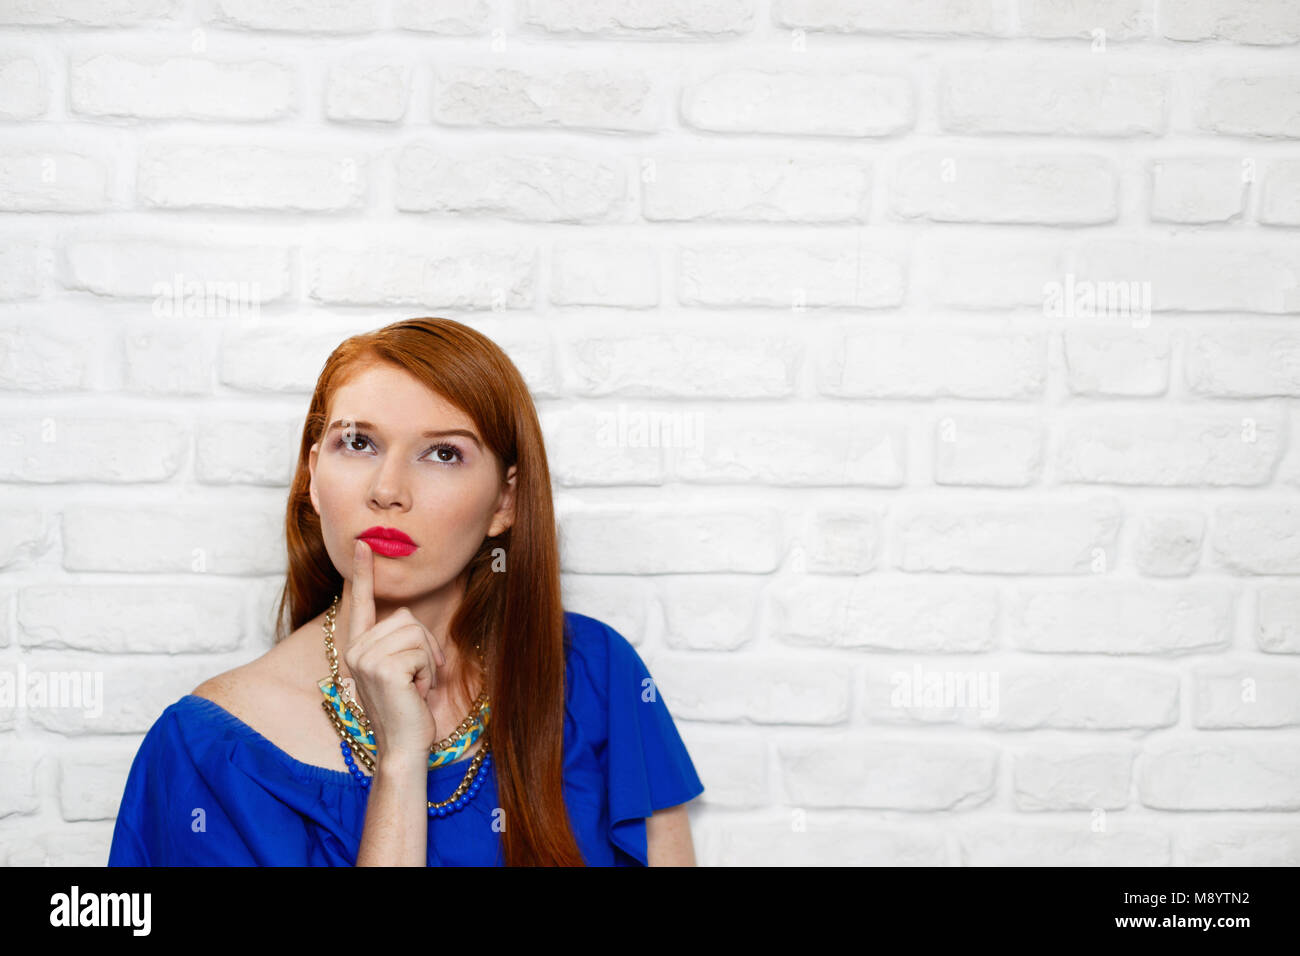 Facial Expressions Of Young Redhead Woman On Brick Wall - Stock Image